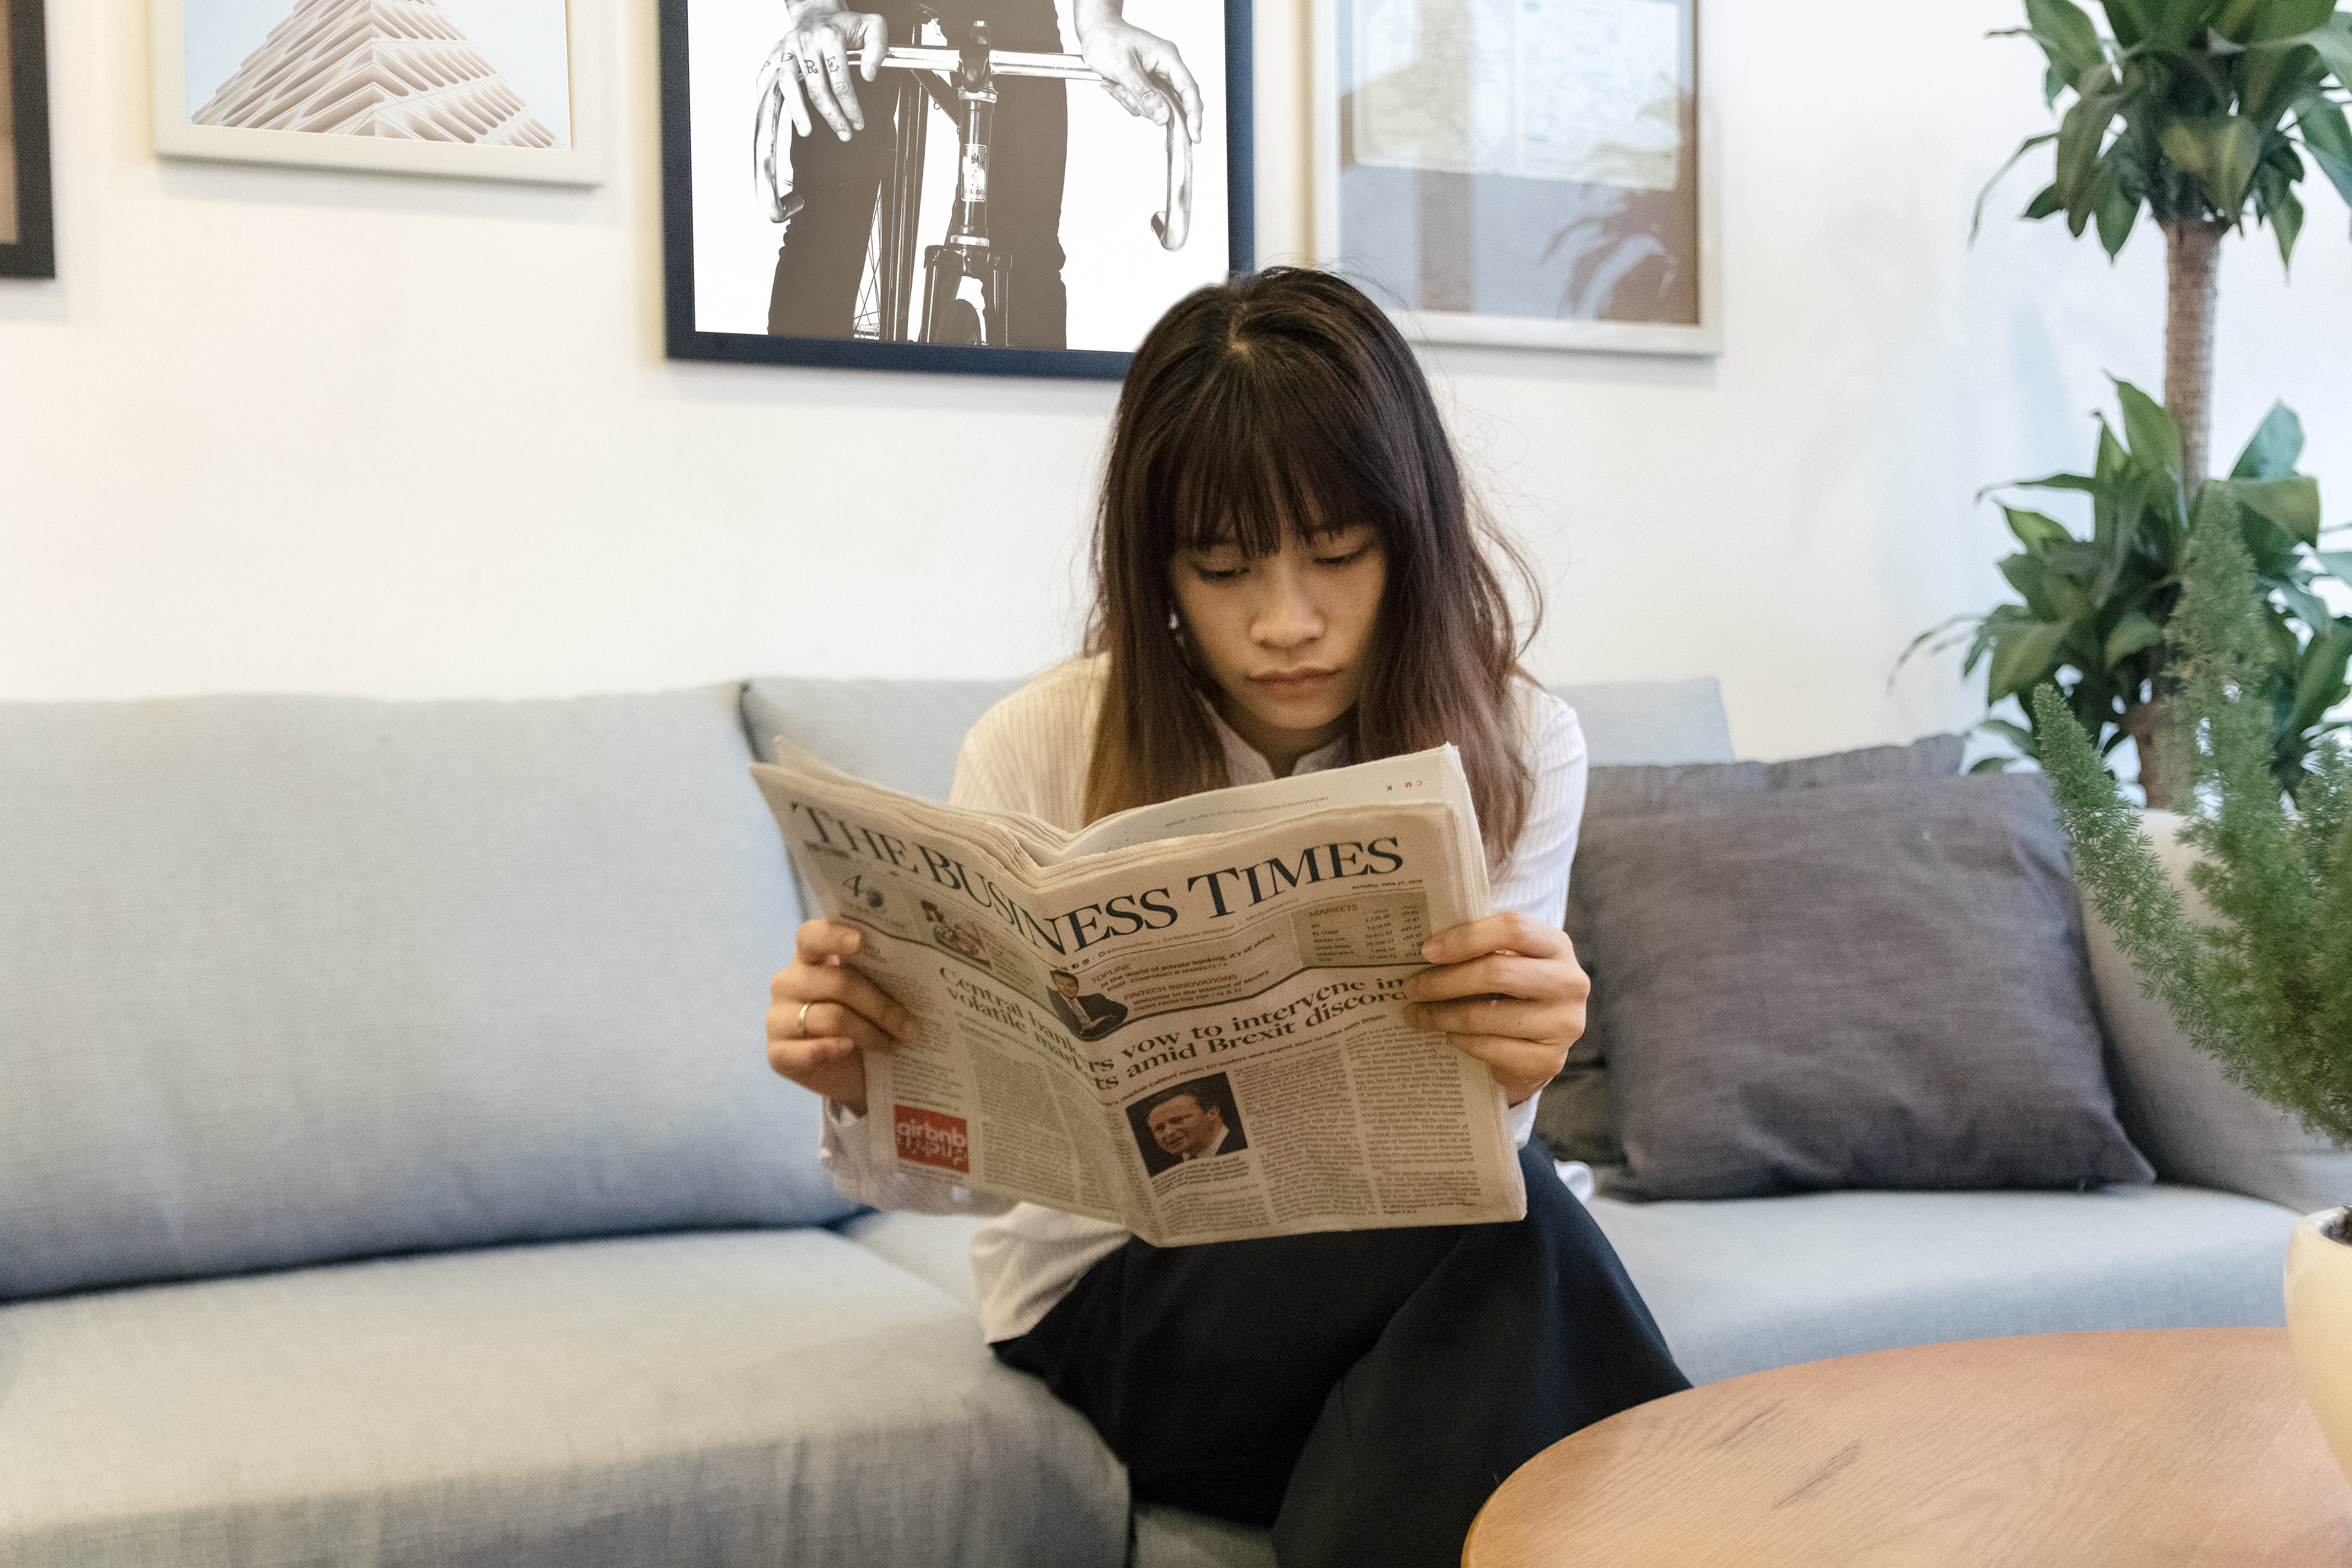 Asian, business paper, business woman